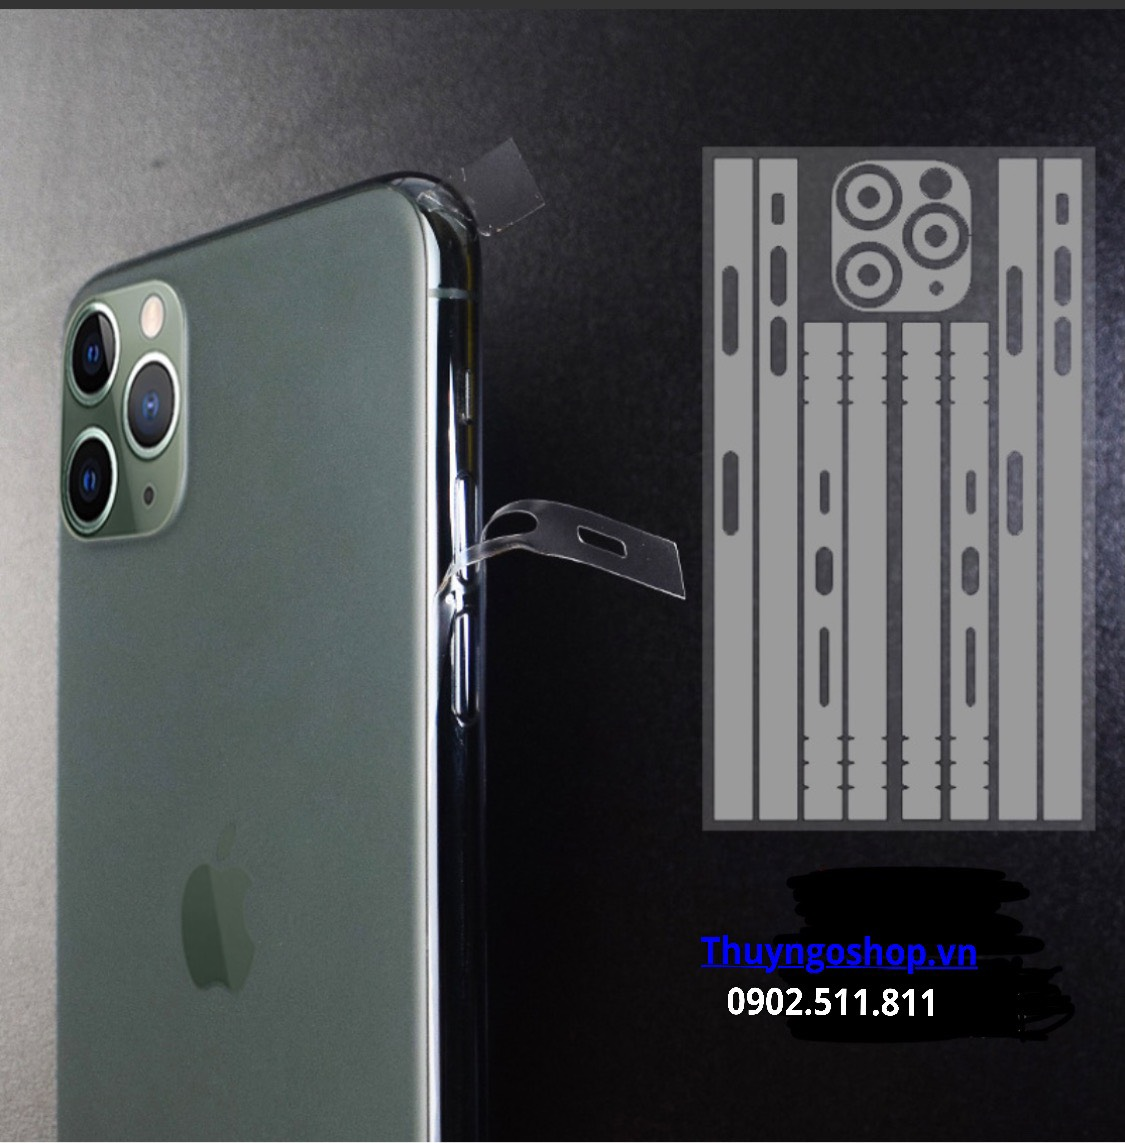 PPF 4 cạnh viền trong suốt / mờ Iphone 11 Pro Max